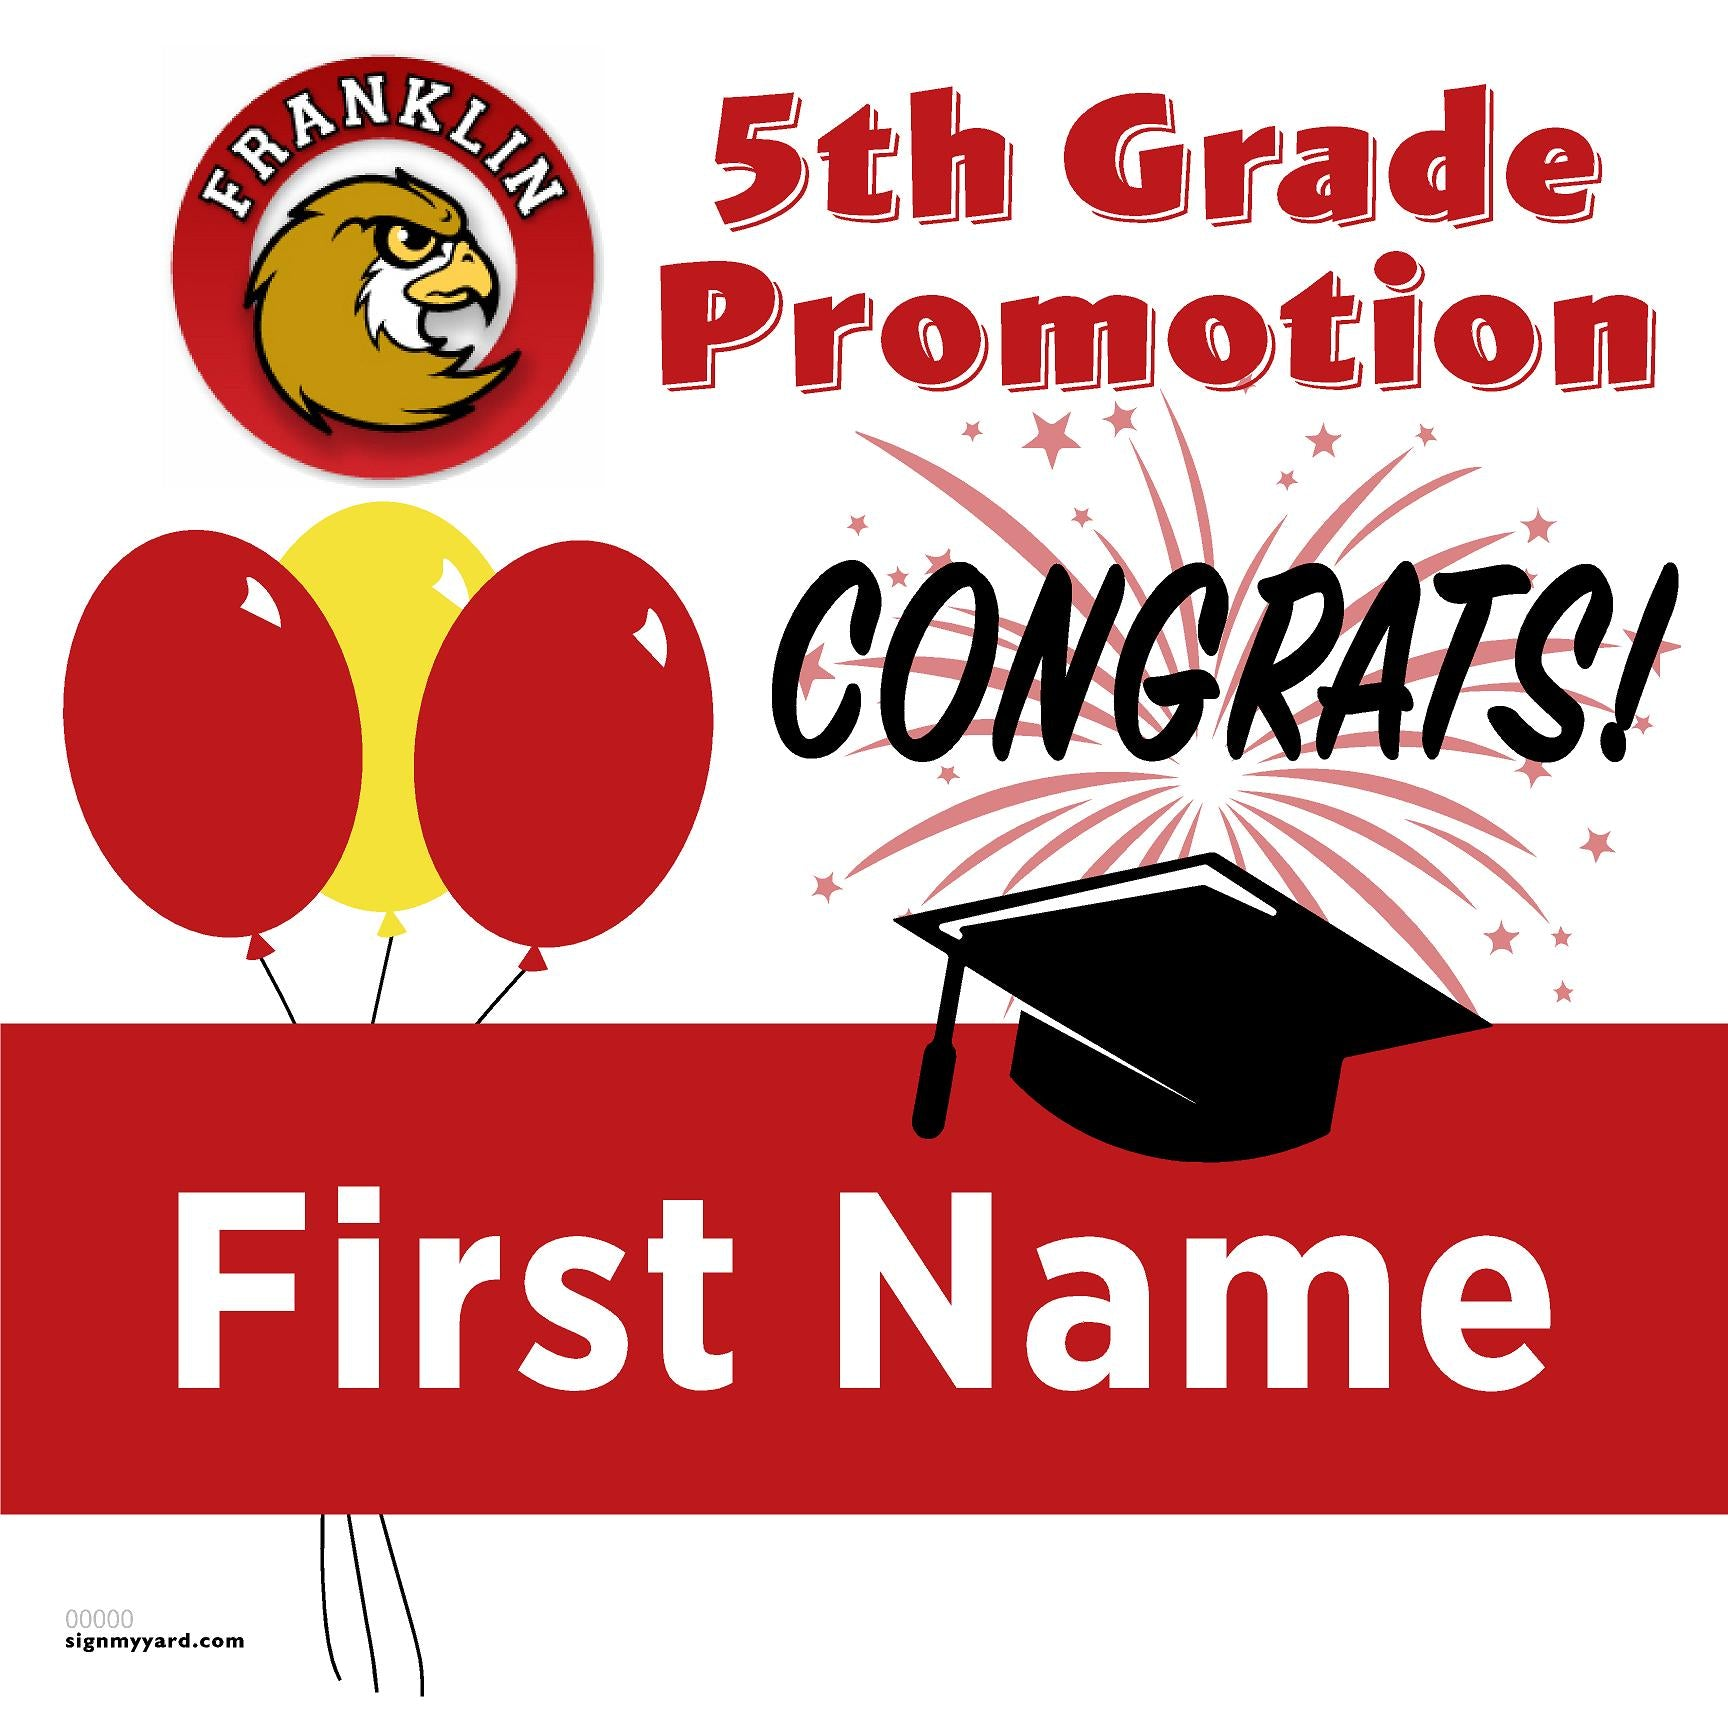 Franklin Elementary School 5th Grade Promotion 24x24 #shineon2027 Yard Sign (Option A)